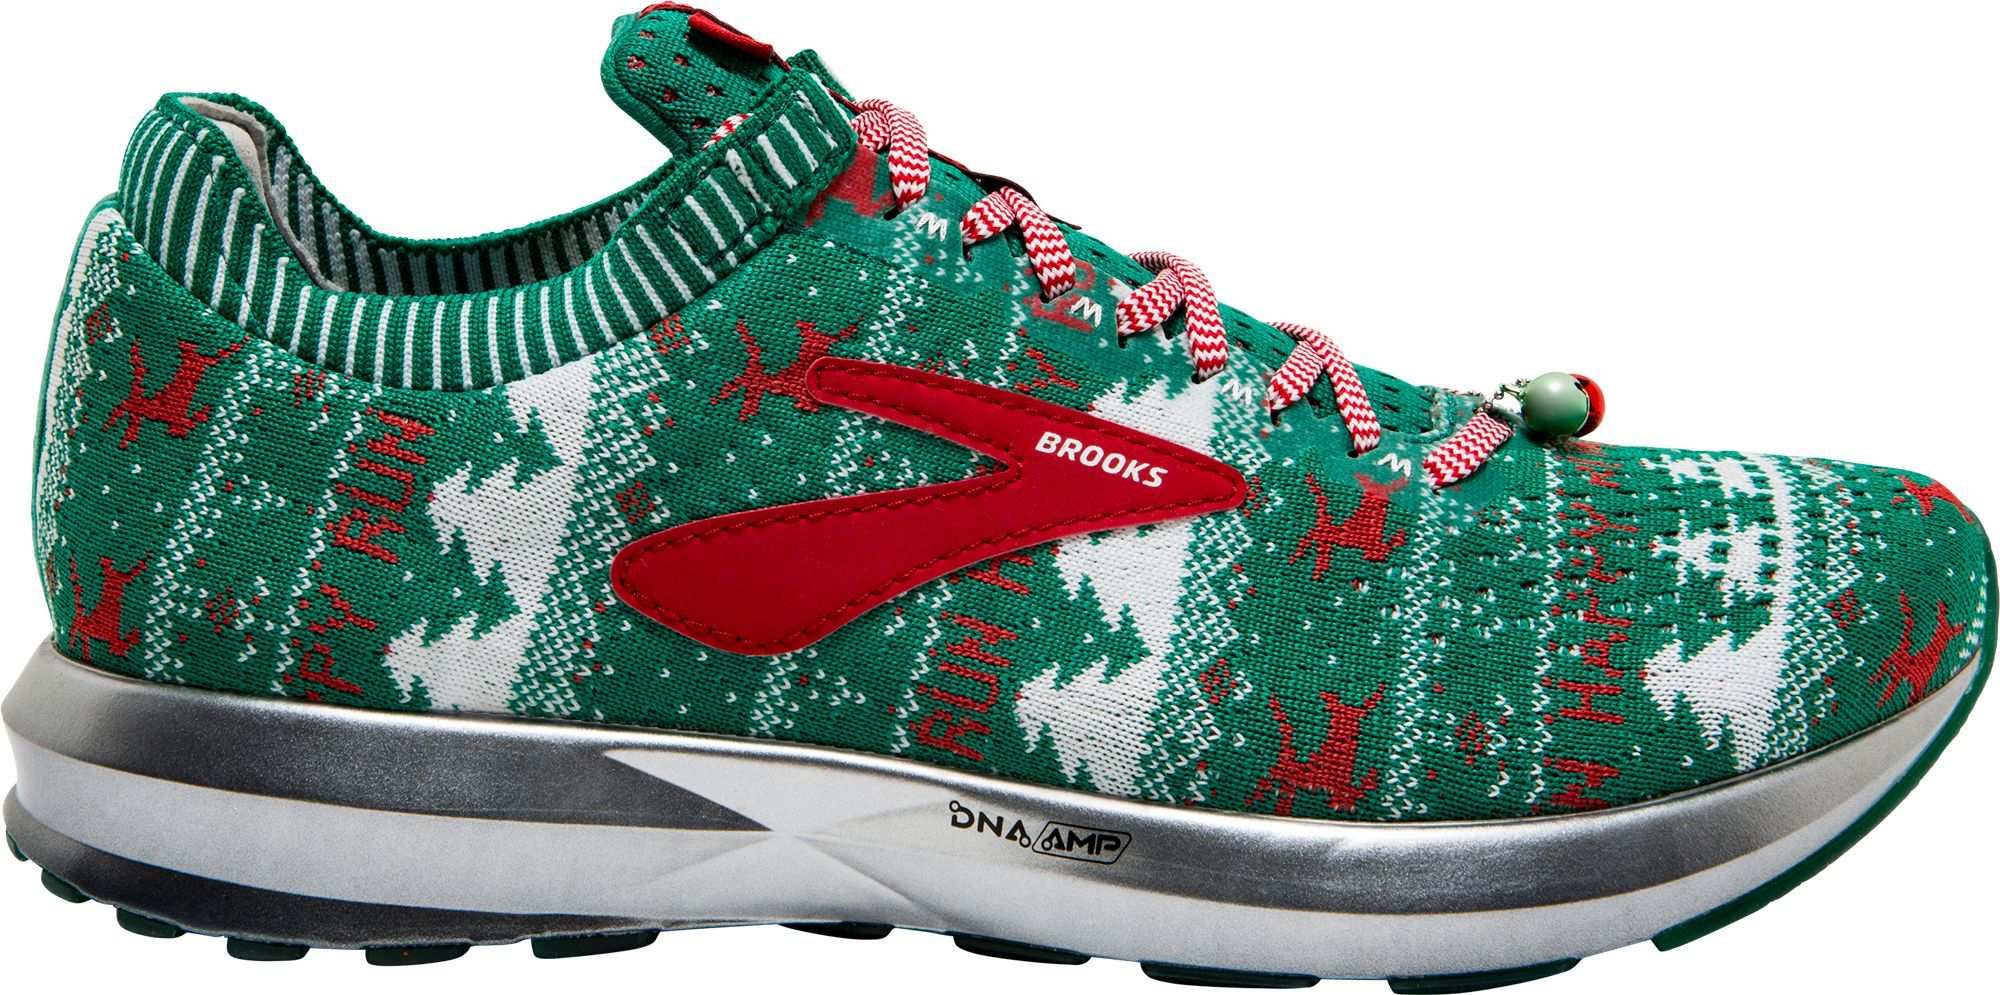 Ugly Sweater Levitate 2 Running Shoes